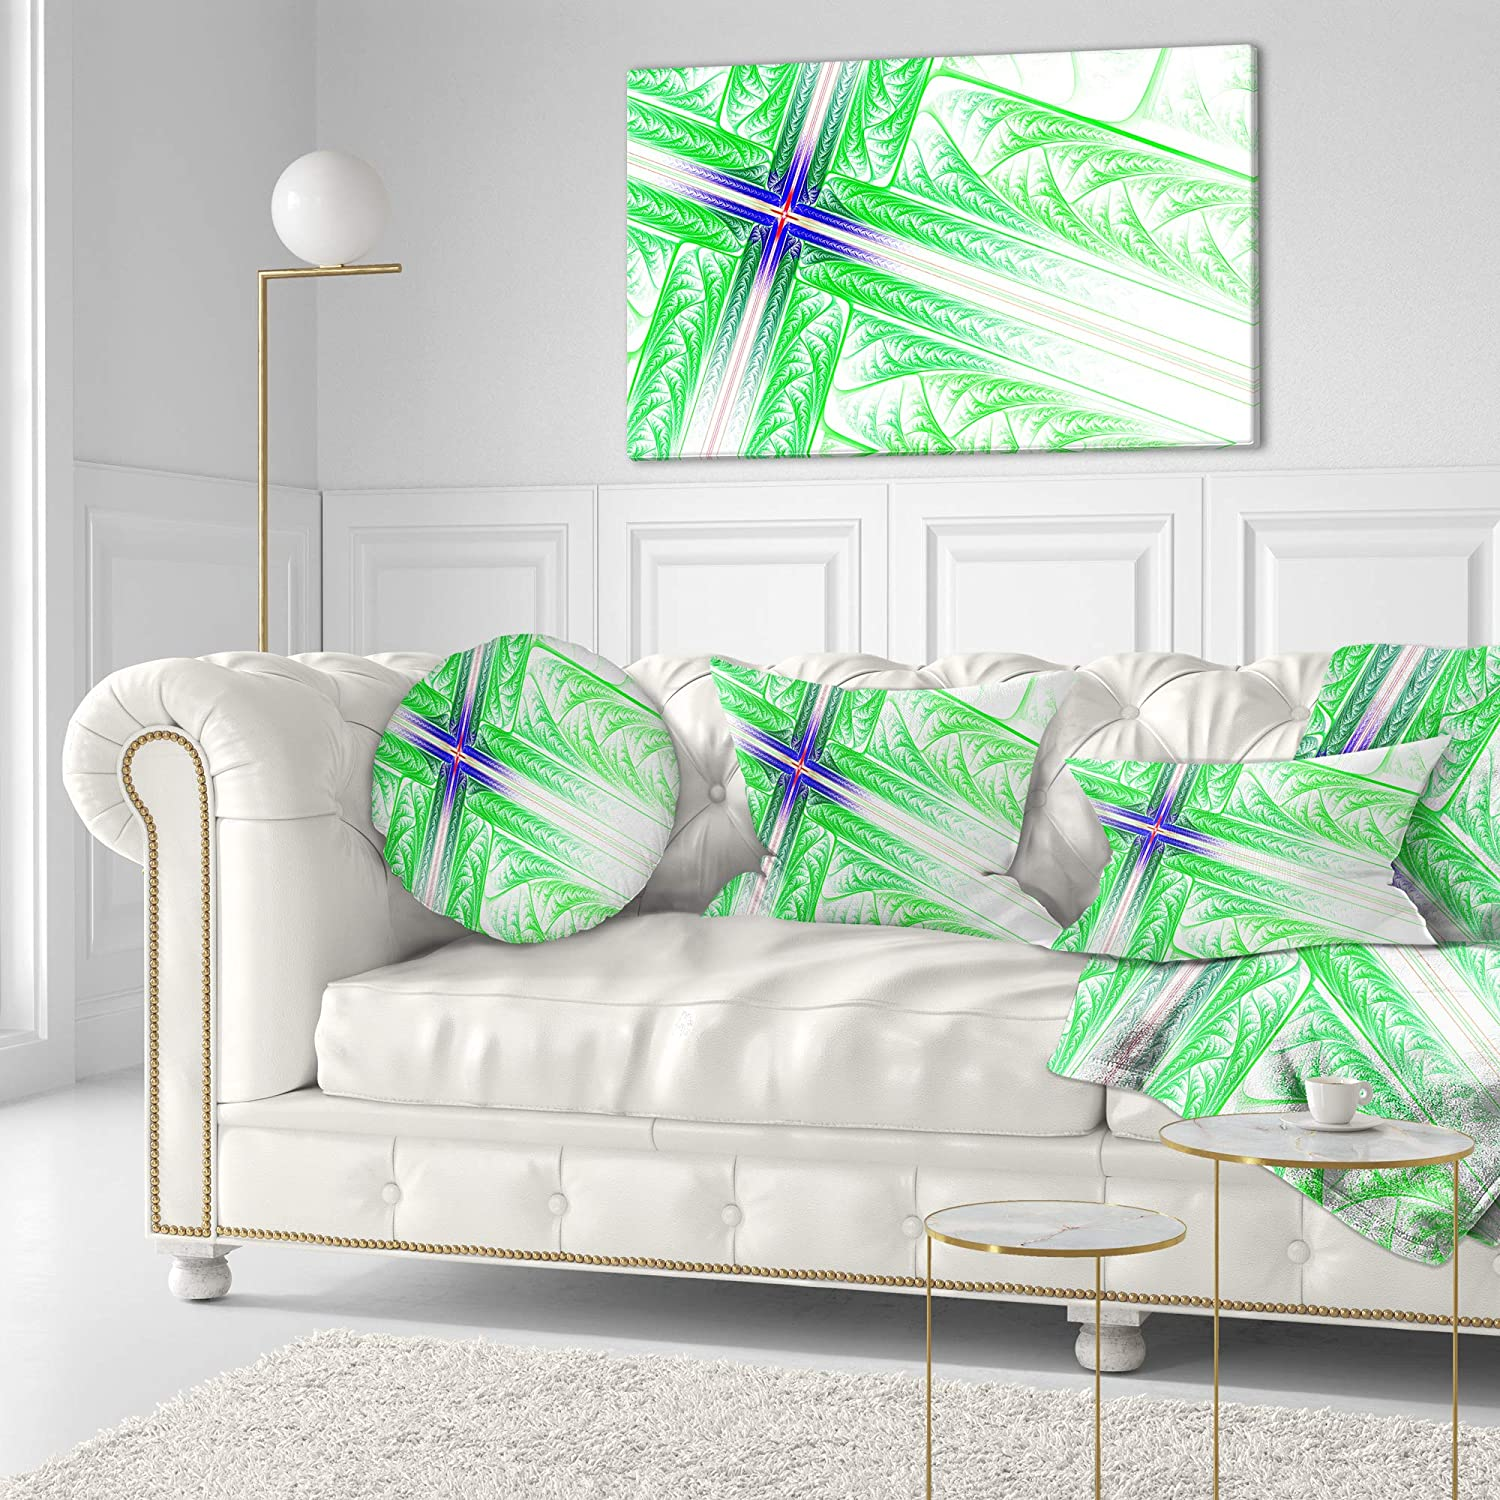 Sofa Throw Pillow 16 Designart CU15961-16-16-C Bright Green Fractal Cross Design Abstract Round Cushion Cover for Living Room Insert Printed On Both Side